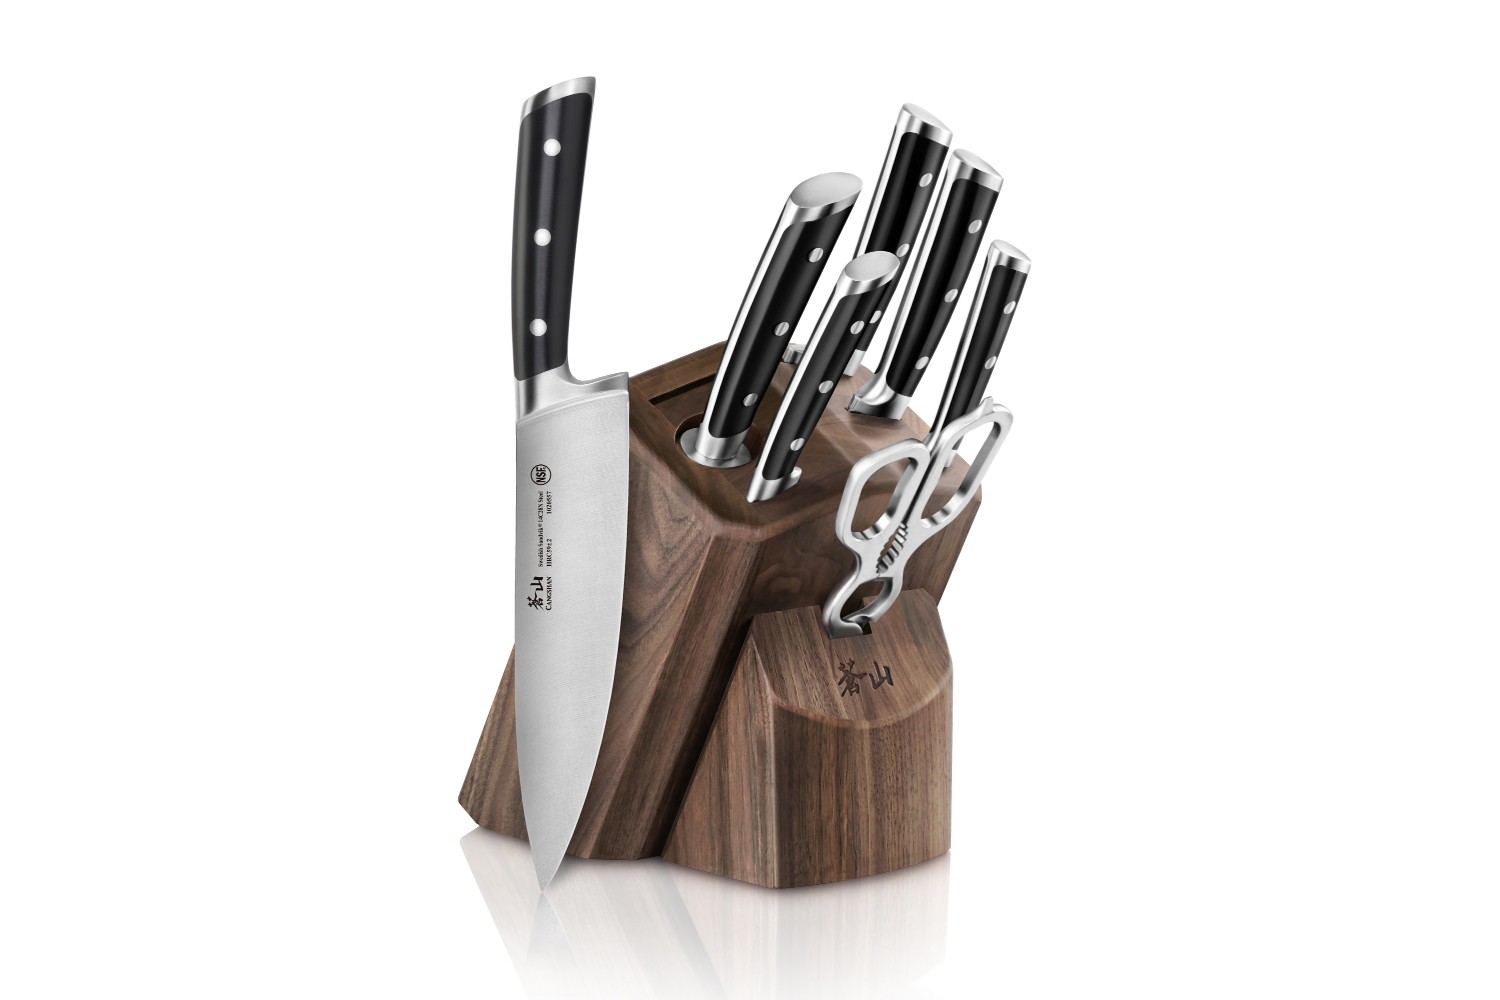 Cangshan TS Series Swedish Steel Forged 8 Piece Knife Block Set w/Walnut Block